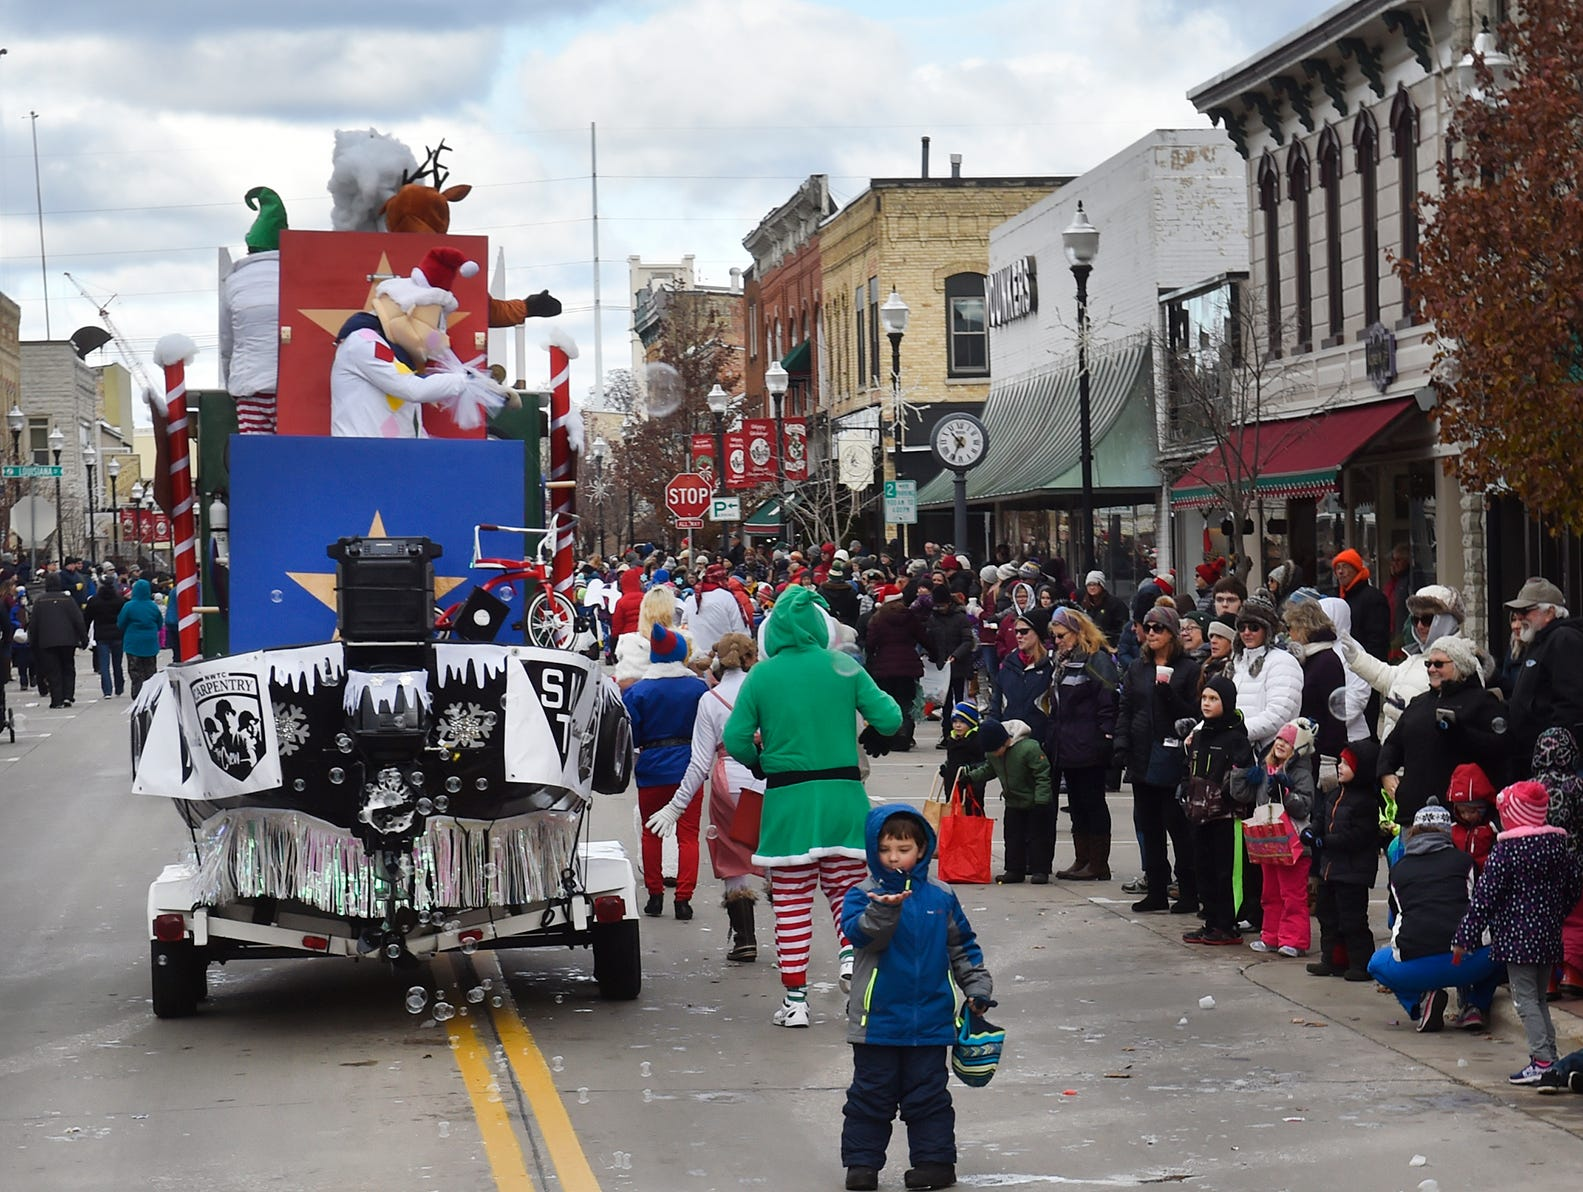 """Selvick Marine & Towing's """"Island of Misfit Toys'' incorporates bubbles in its float at the Christmas By The Bay parade on Saturday, Nov. 17, 2018, in Sturgeon Bay. Tina M. Gohr/USA TODAY NETWORK-Wisconsins"""